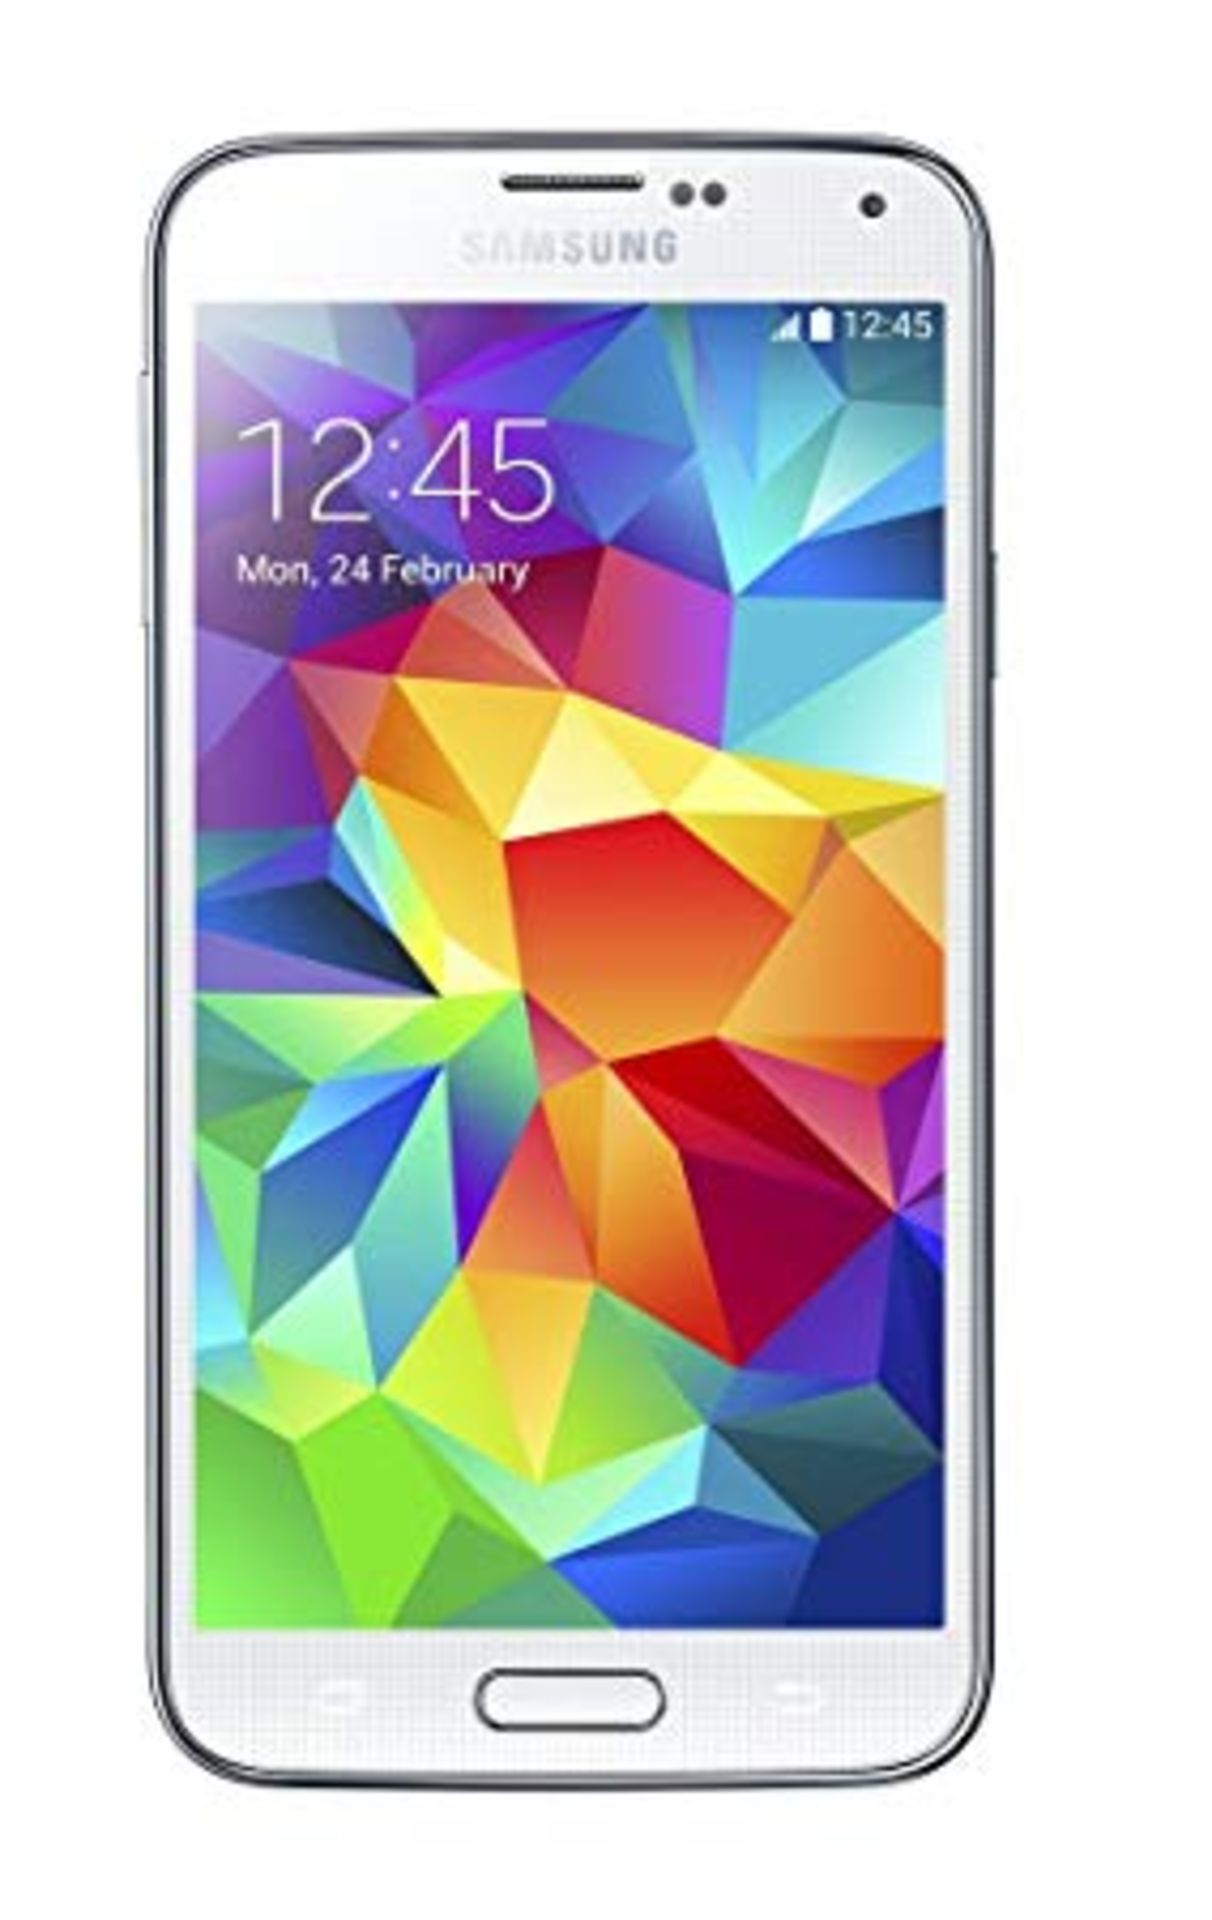 No VAT Grade A Samsung S5 ( G900F) Colours May Vary Item available approx 15 working days after